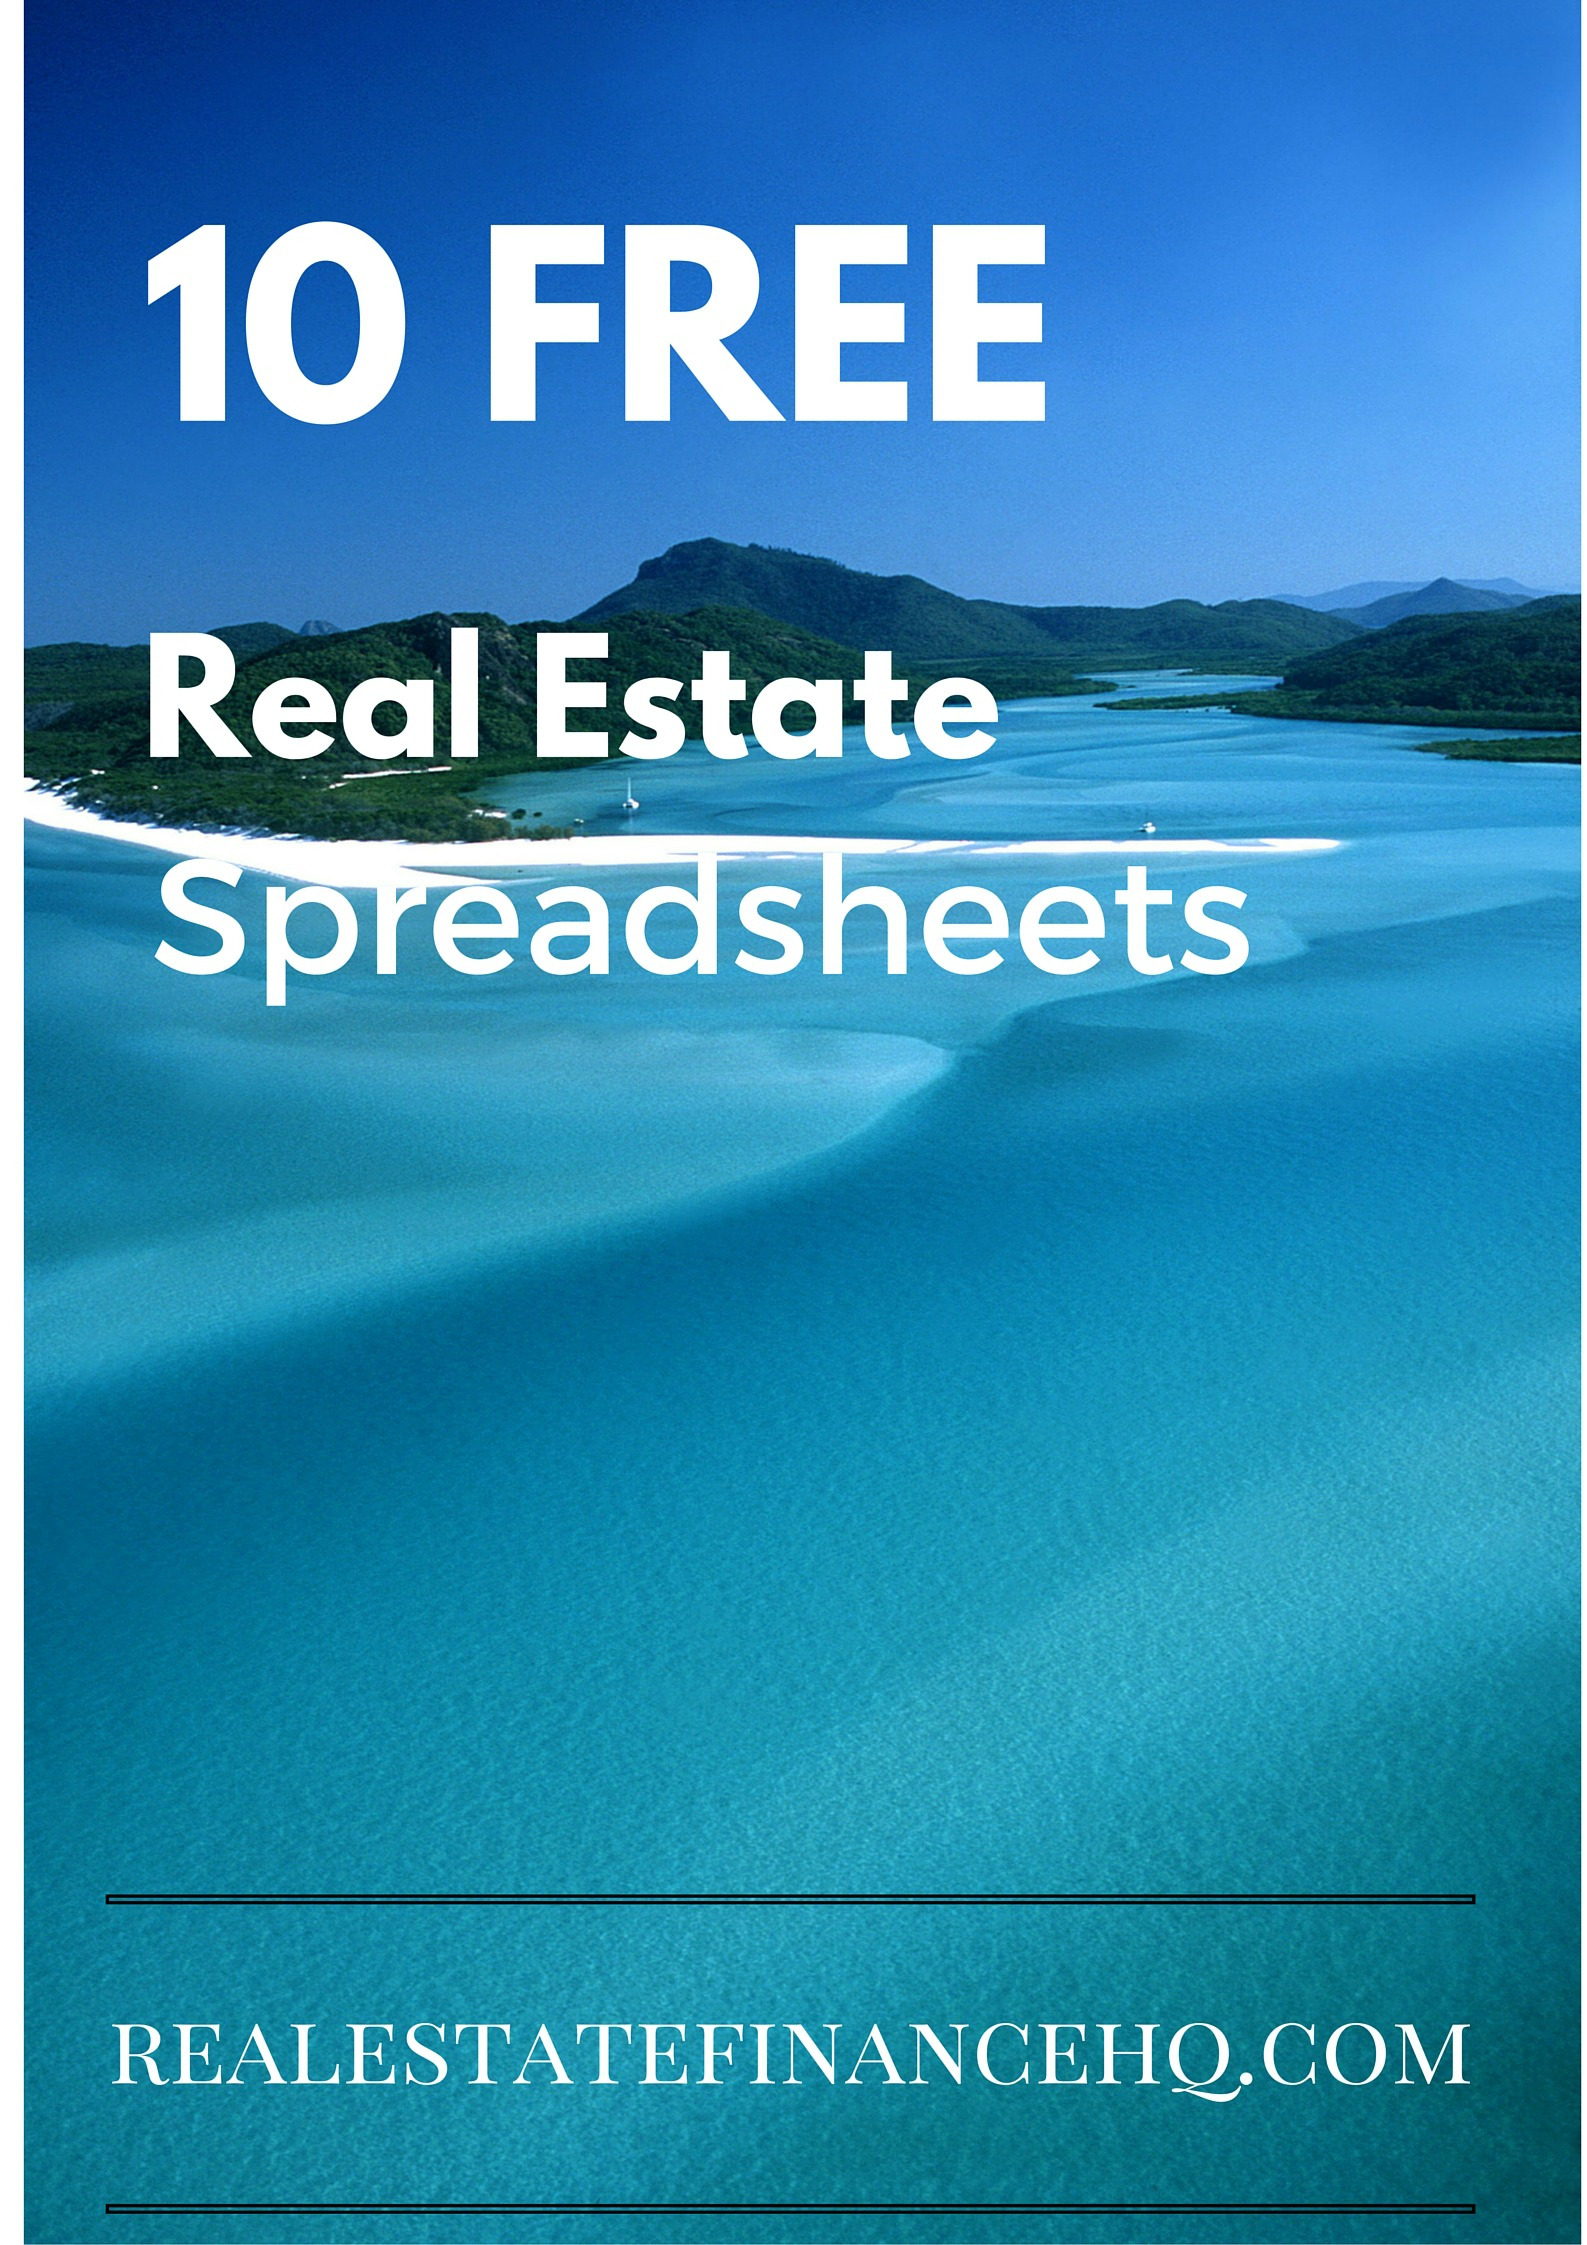 Property Development Appraisal Spreadsheet Intended For 10 Free Real Estate Spreadsheets  Real Estate Finance